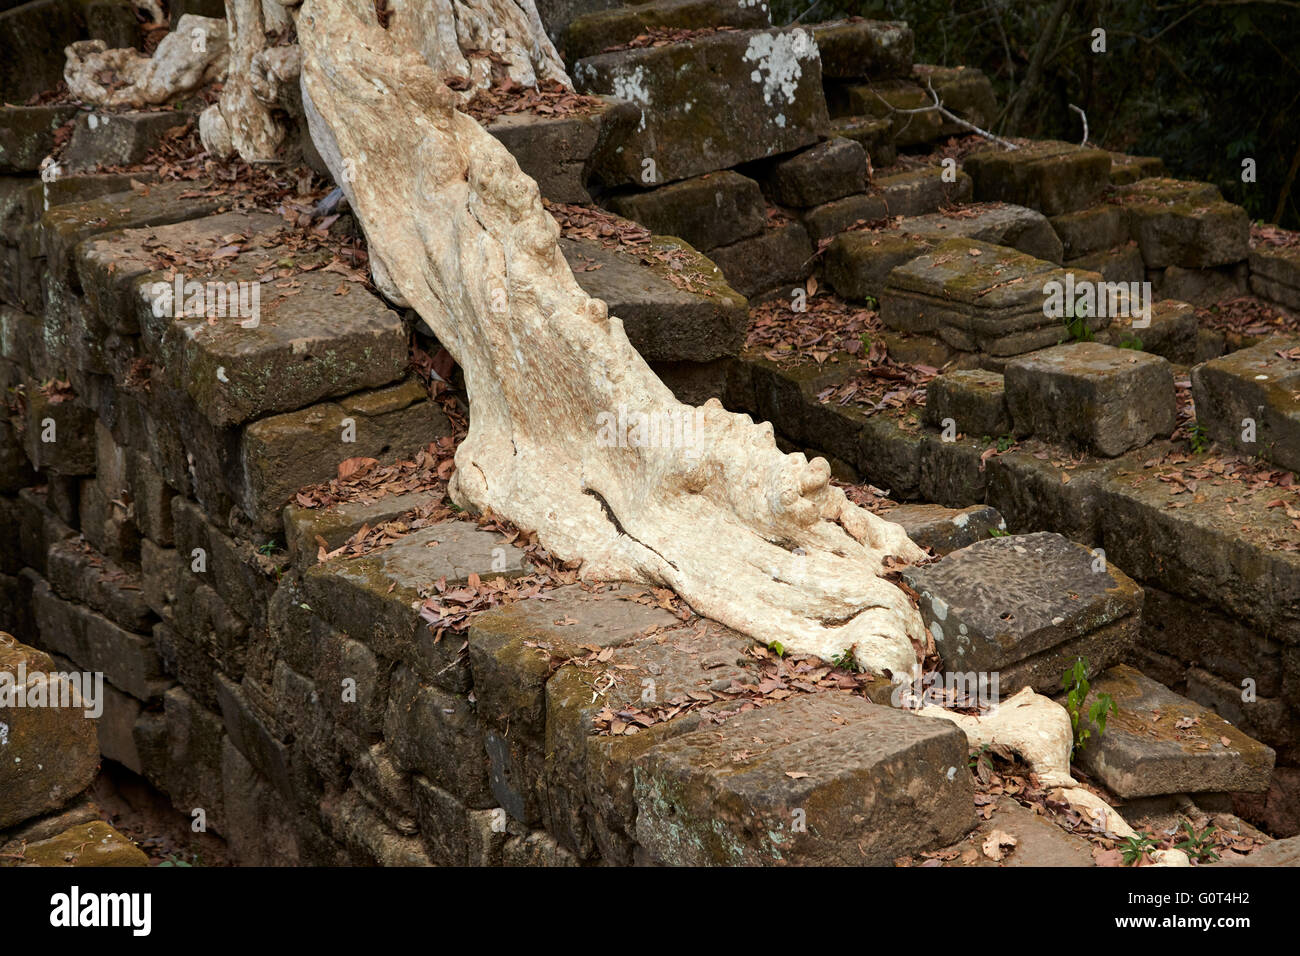 Tree root on ruins of ancient Spean Thmor bridge, Angkor World Heritage Site, Siem Reap, Cambodia - Stock Image